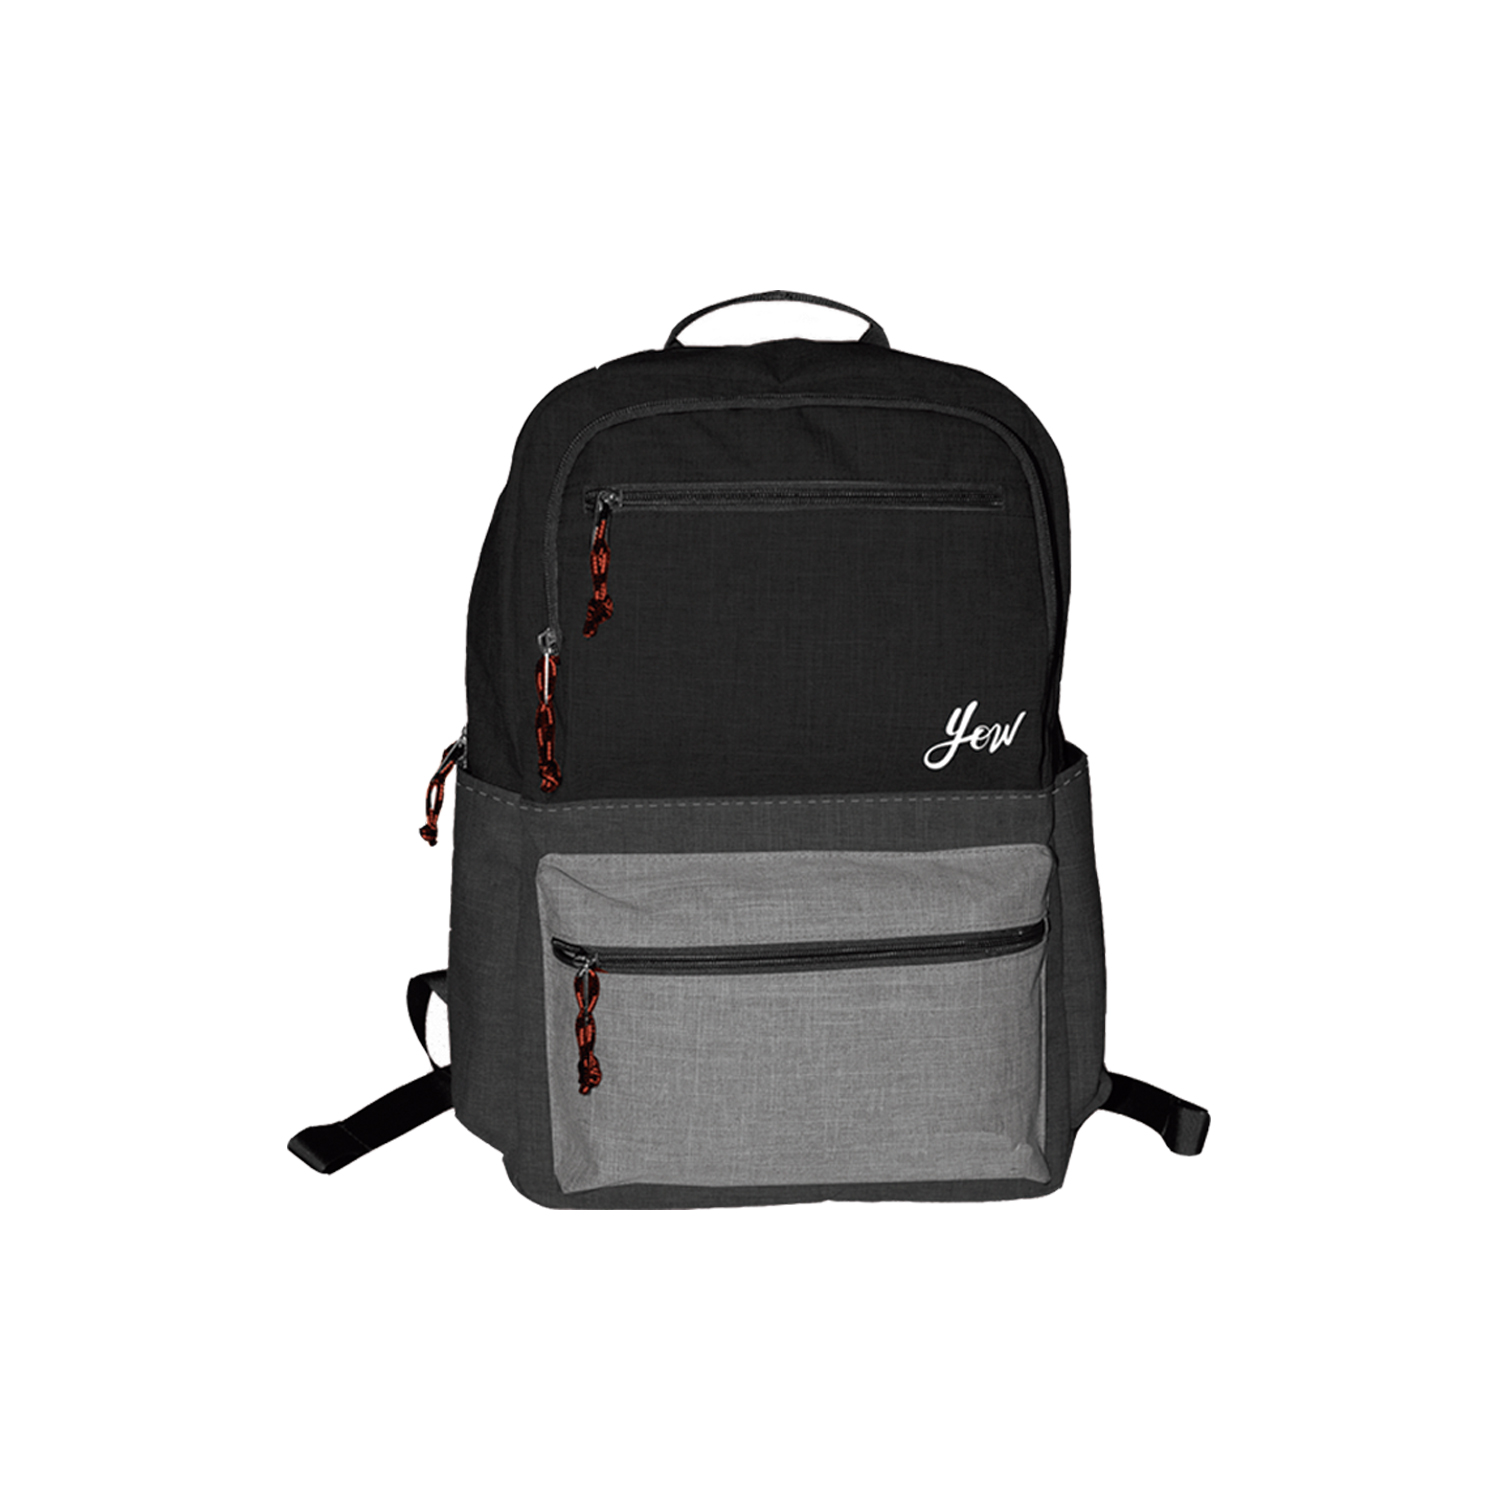 Yow Backpack Black